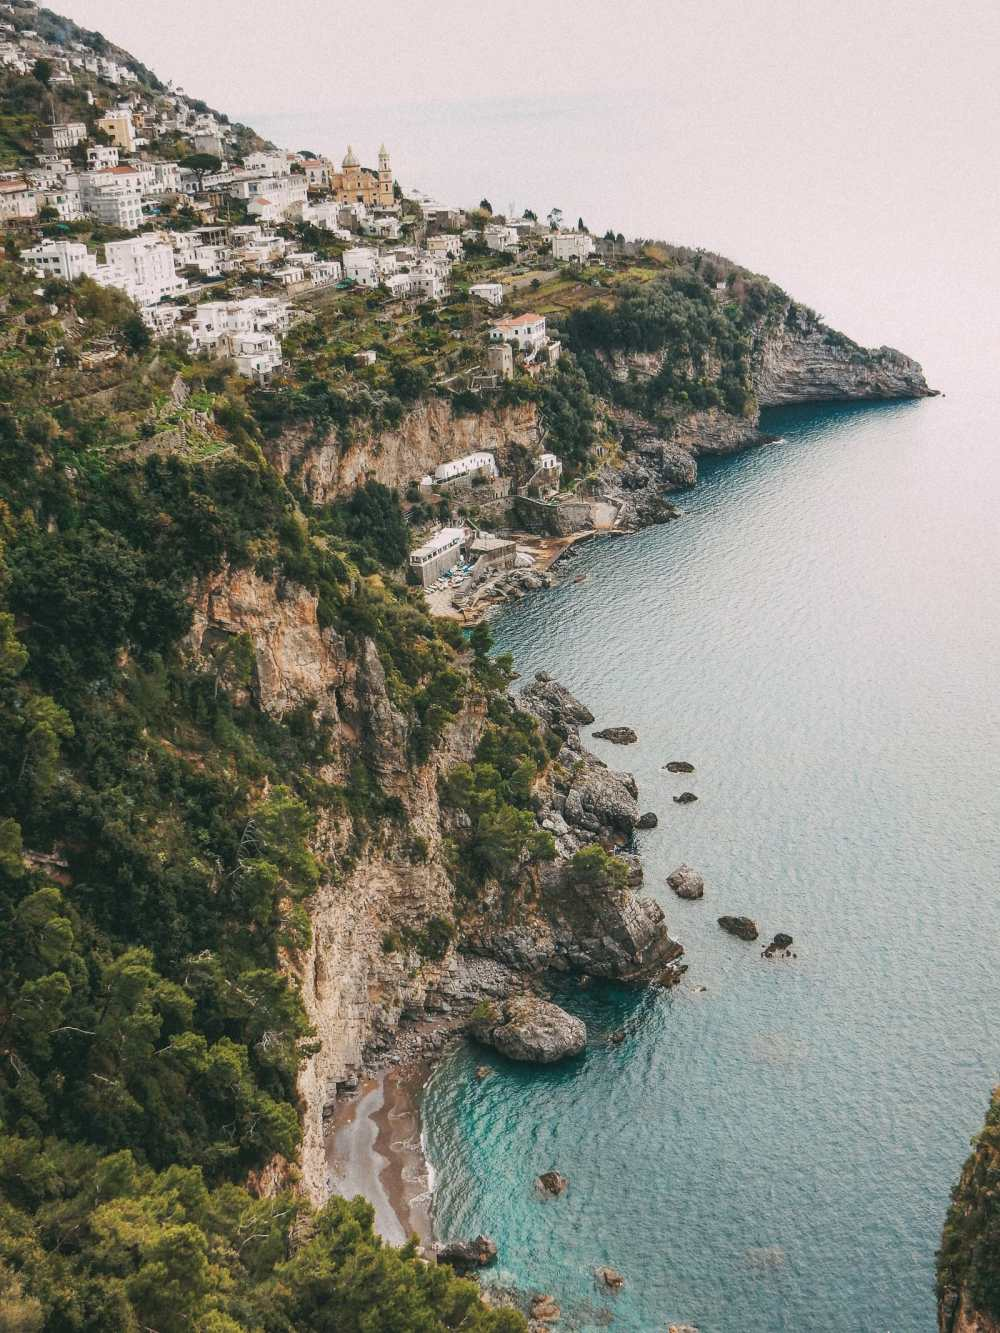 12 Beautiful Places In The Amalfi Coast Of Italy That You Have To Visit (10)